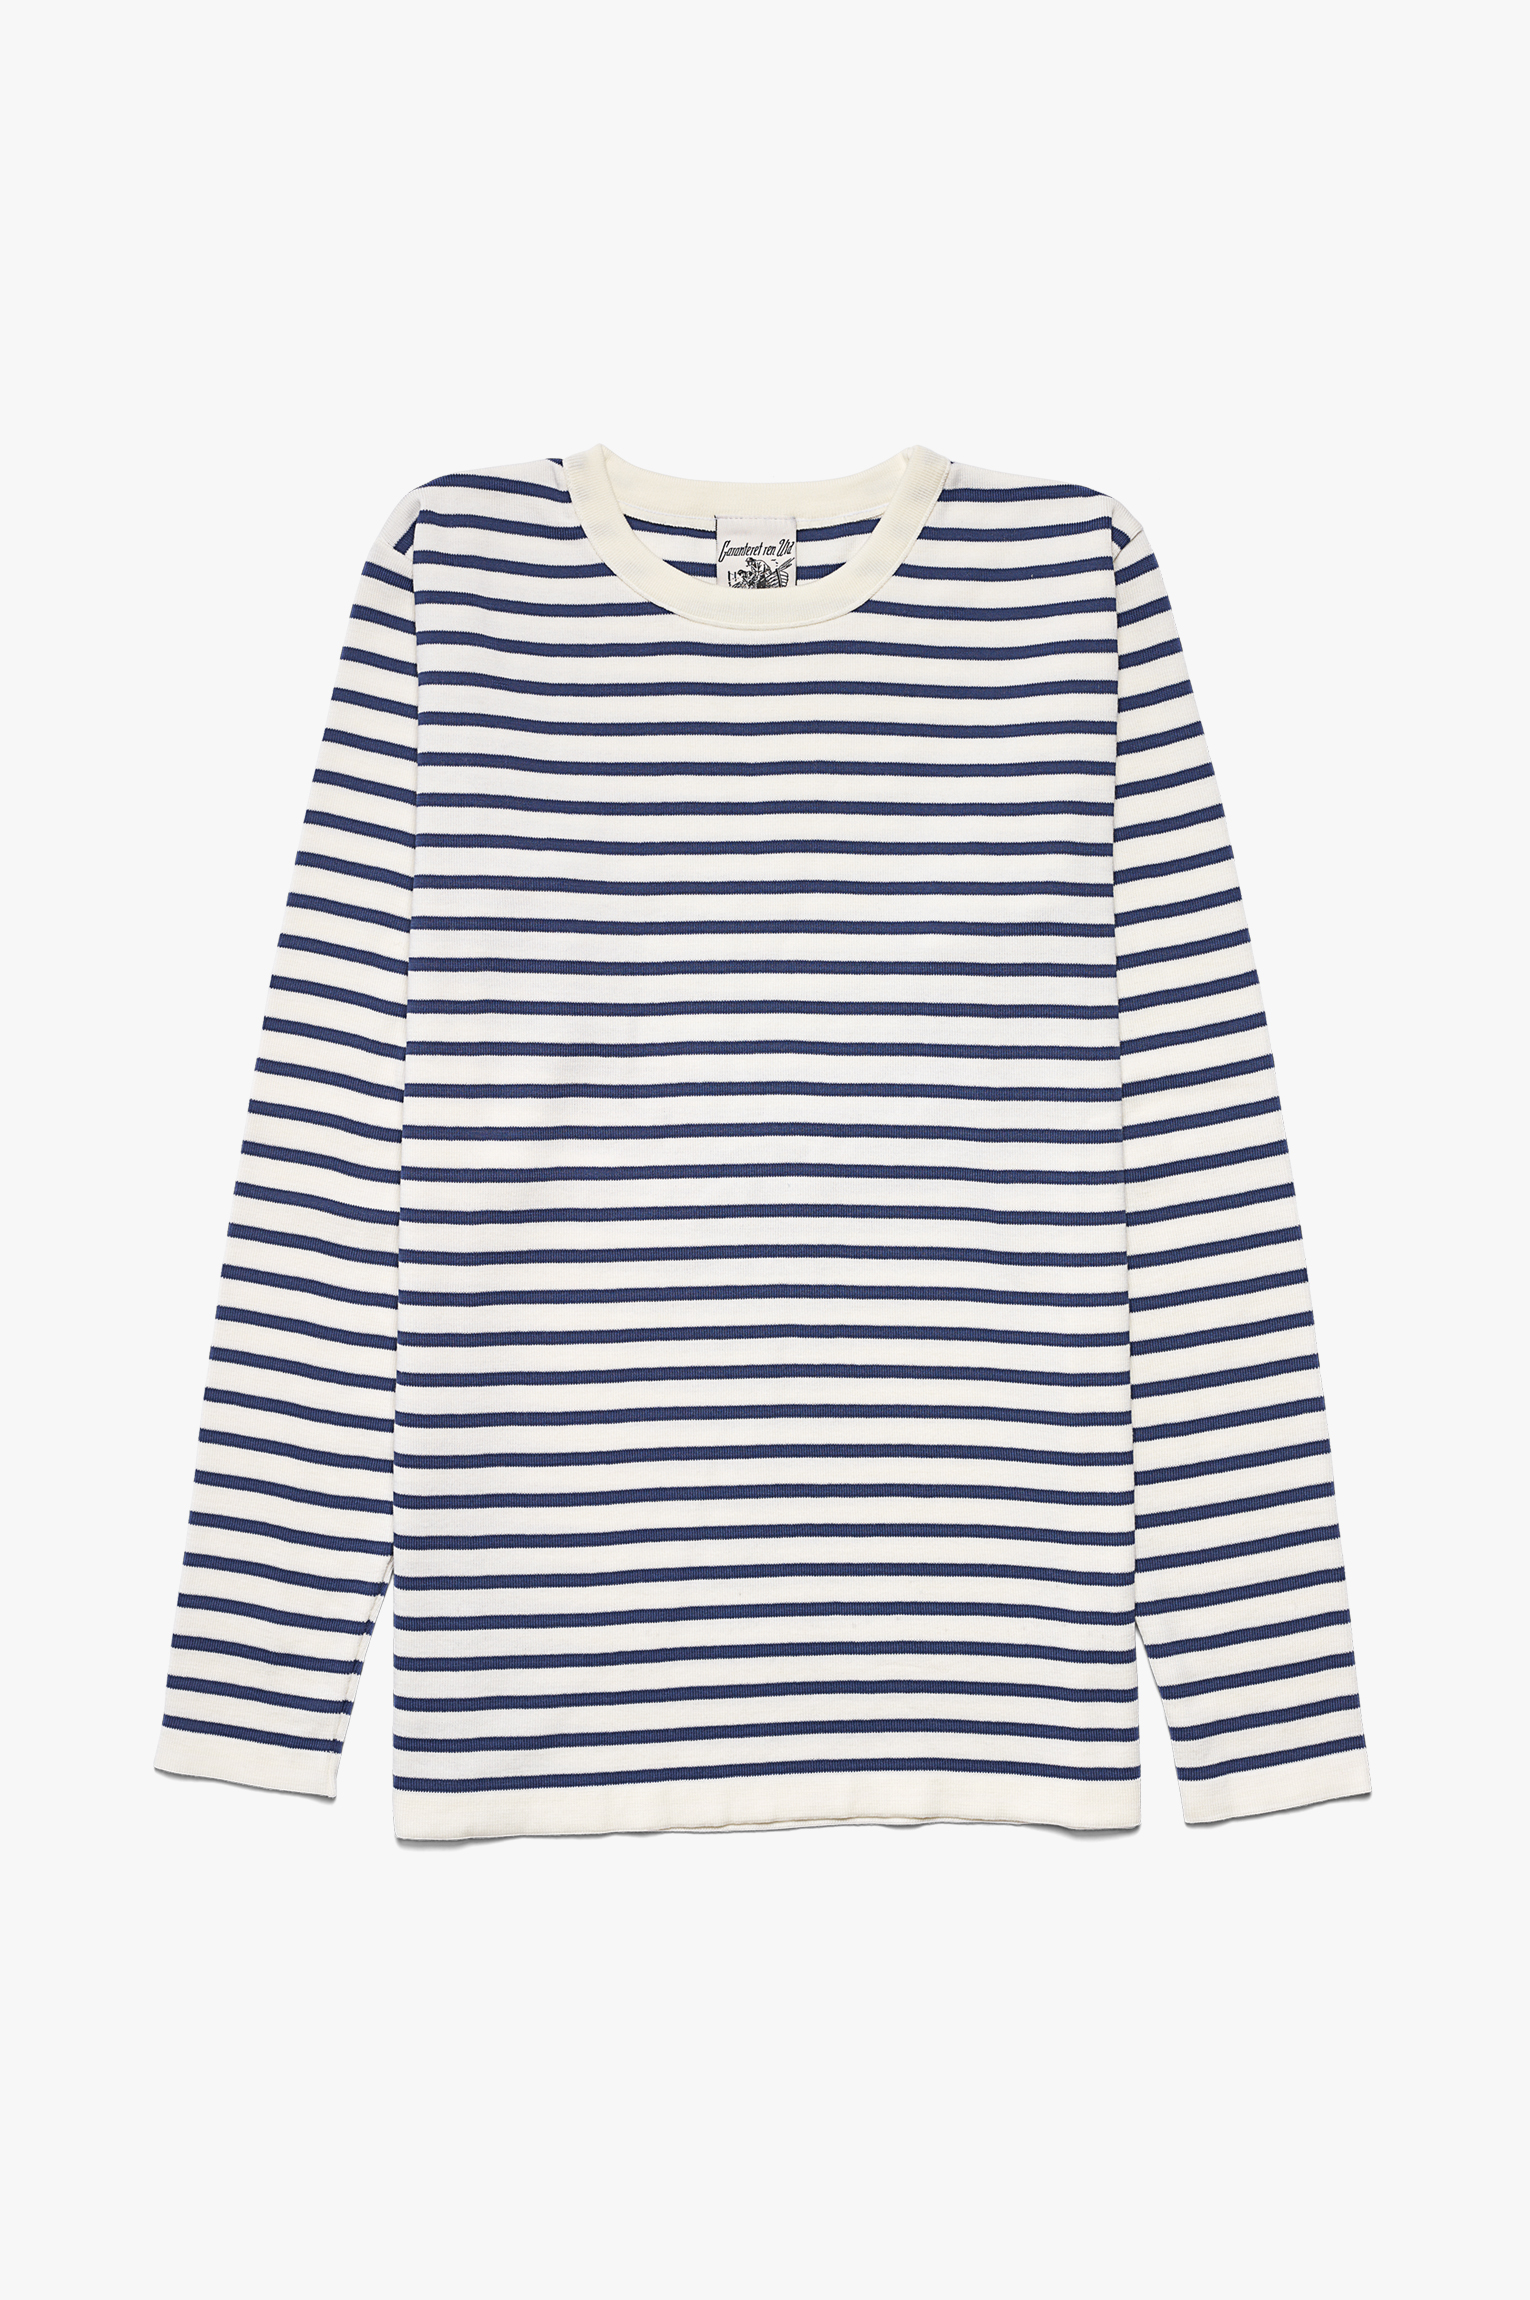 Passage Crew Neck White/Blue Stripes